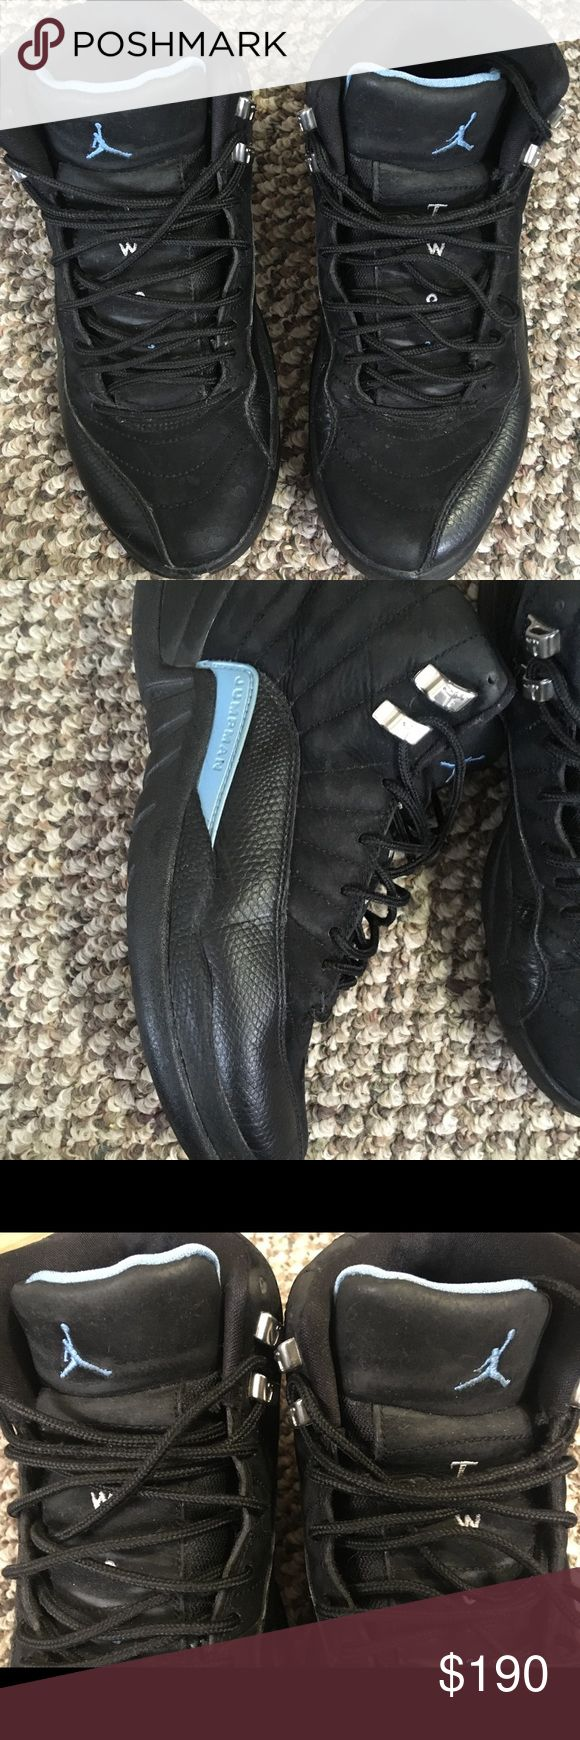 Jordan Retro 12s Retro 12s. Black suede and baby blue. Shoes are still in great condition with minimal visible wear. 100% authentic with all original parts. Please see all the pictures closely. The price range on these right now is anywhere up to $500 depending on the condition. We're open to why and all offers, Jordan Shoes Sneakers